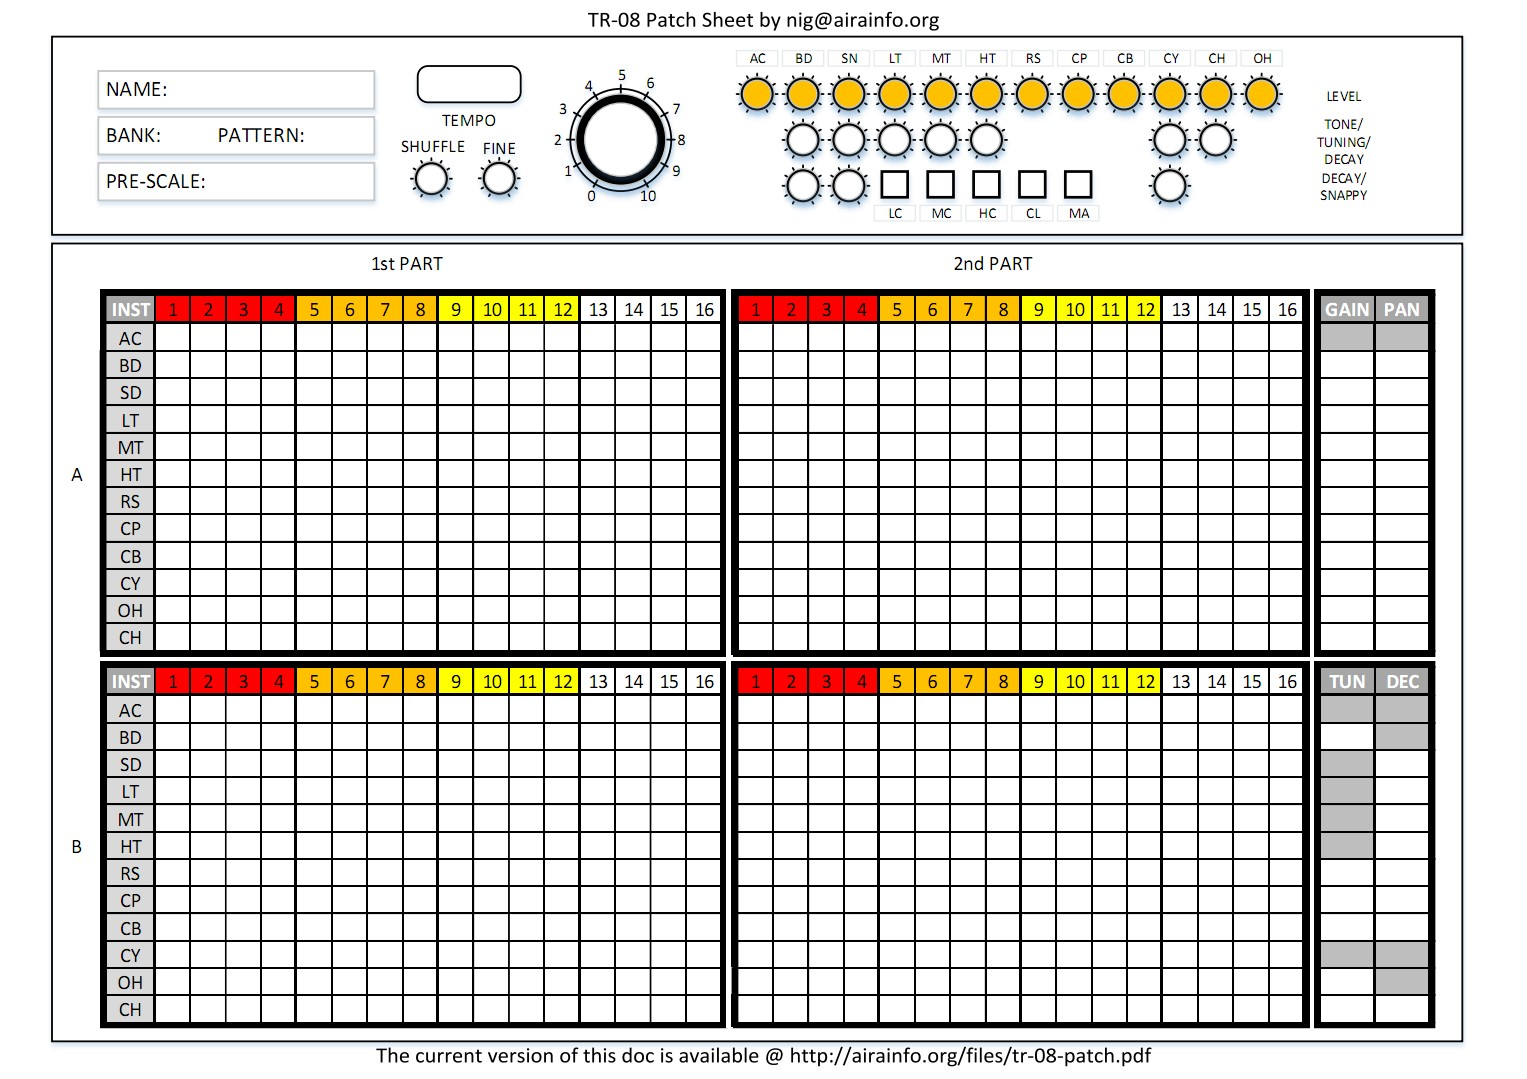 TR-08 Patch Sheet